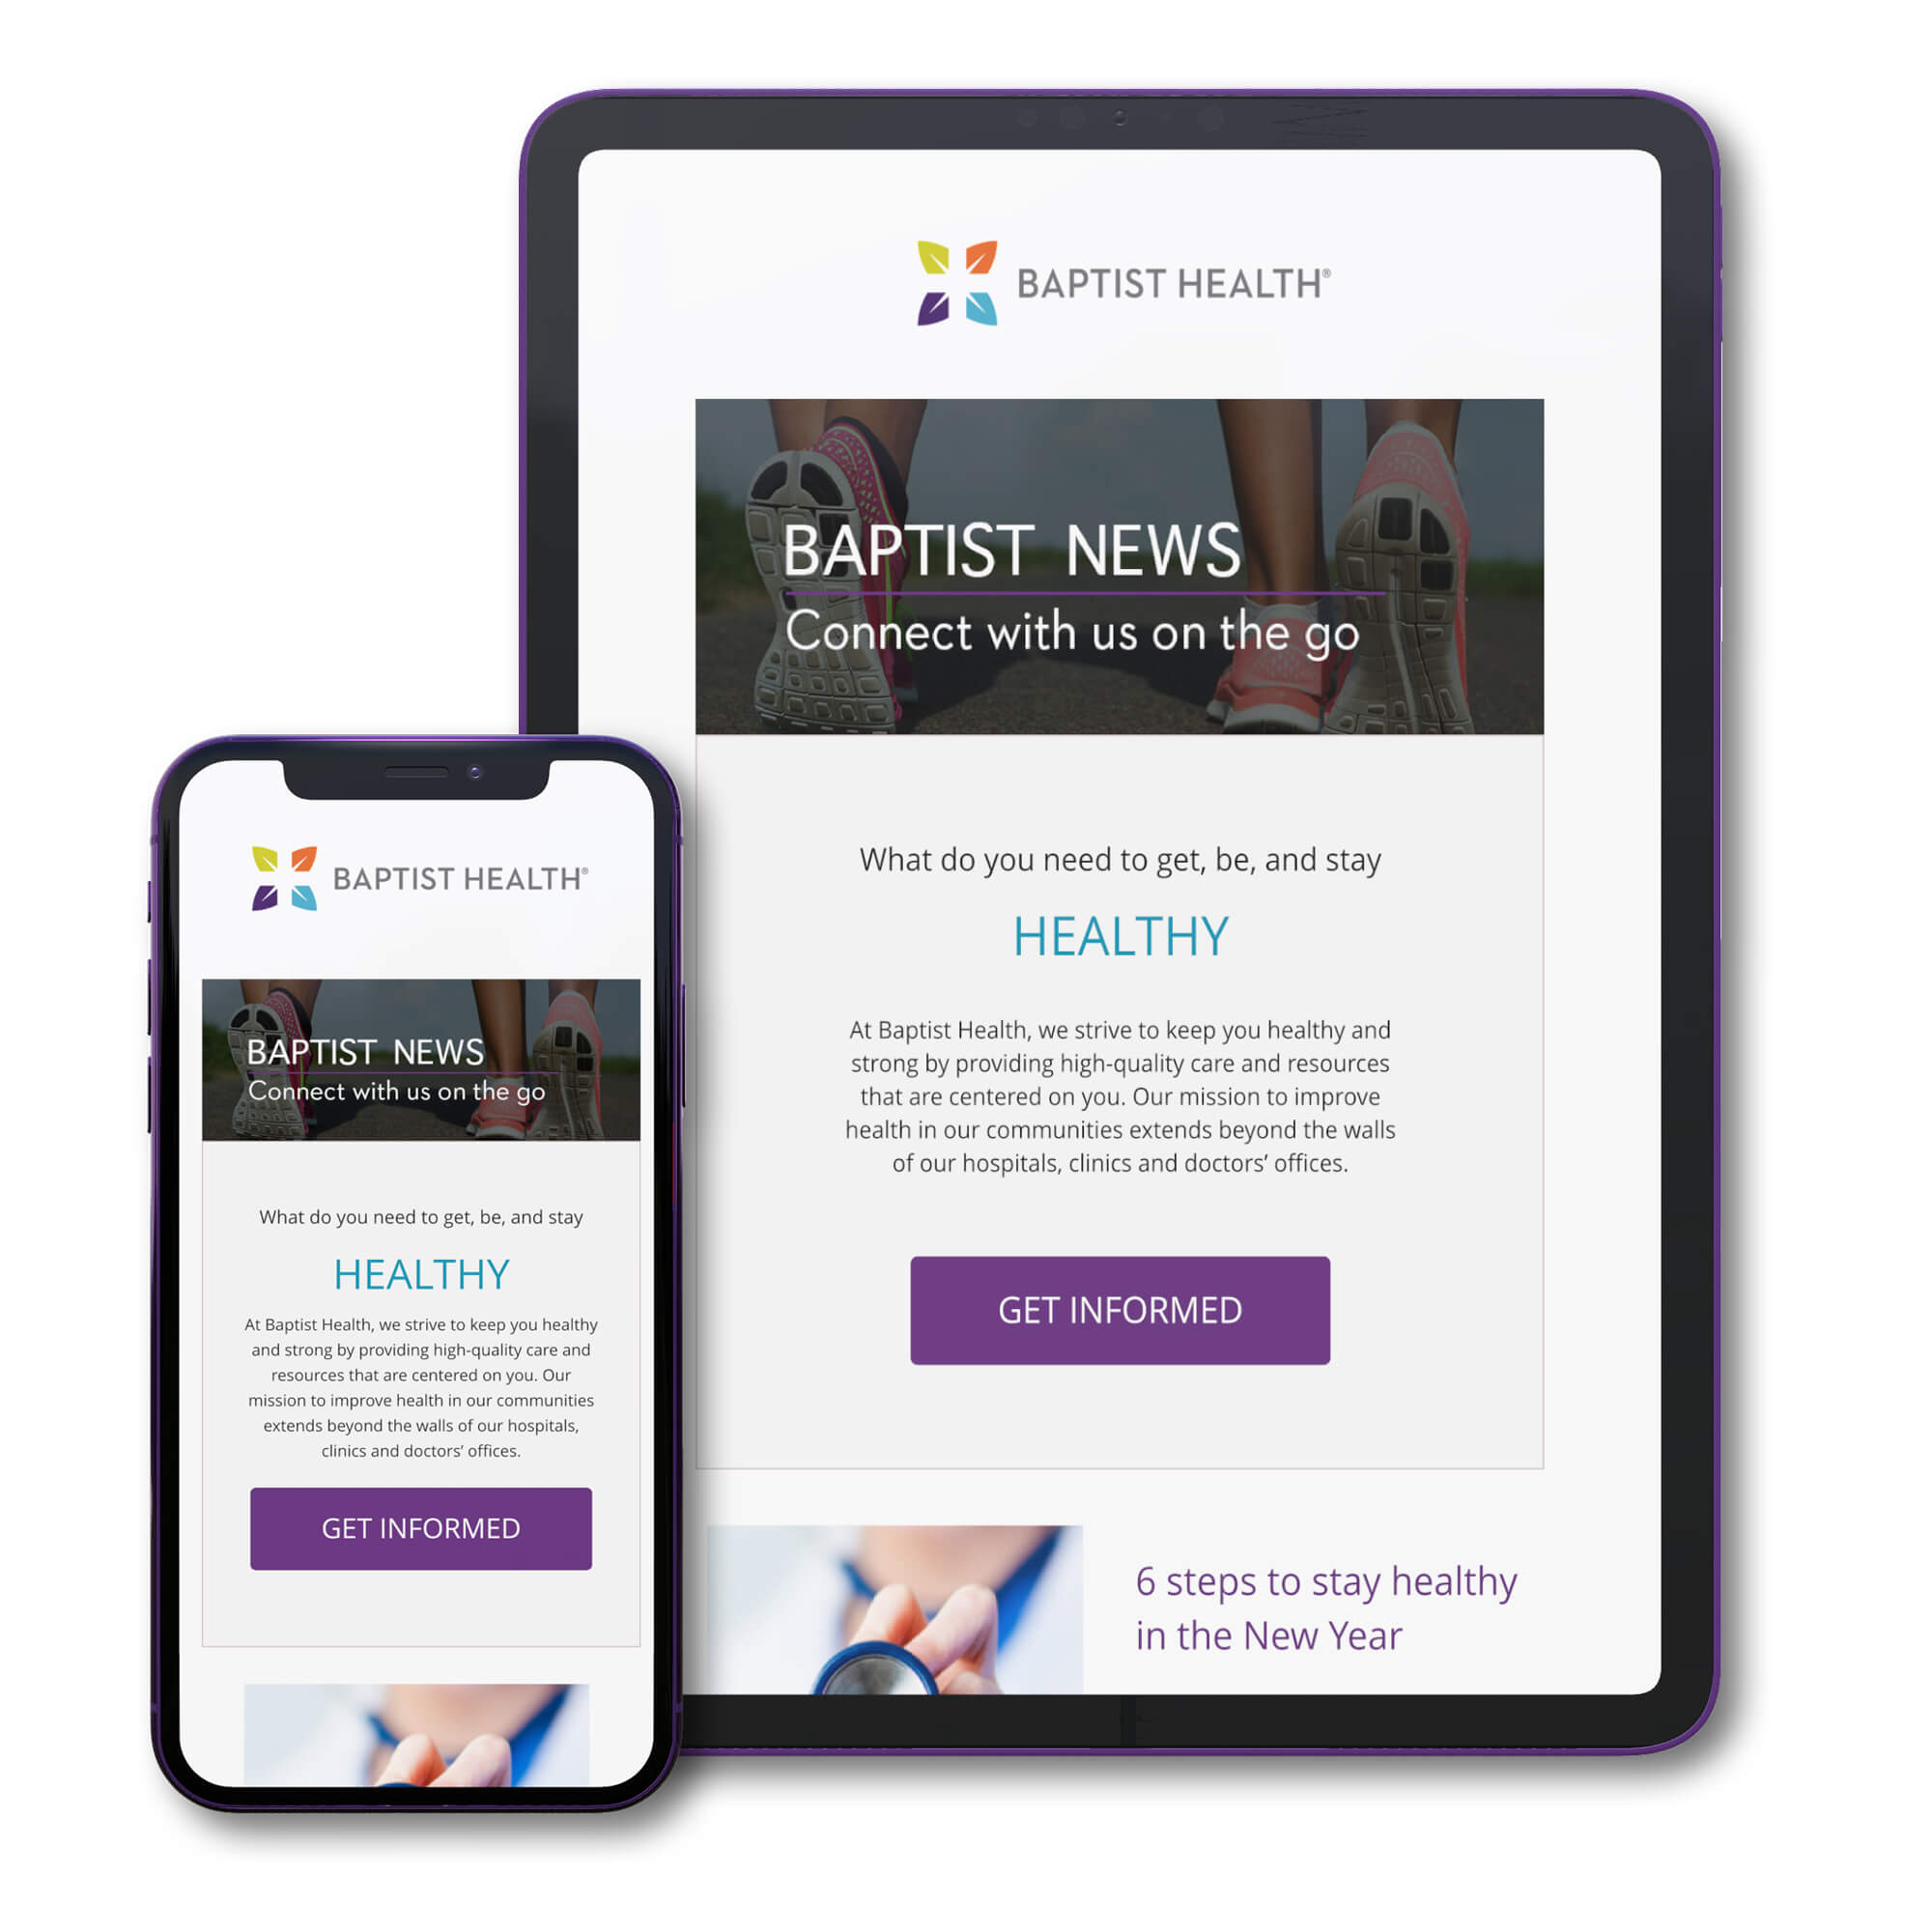 Baptist Health Email Template on Devices